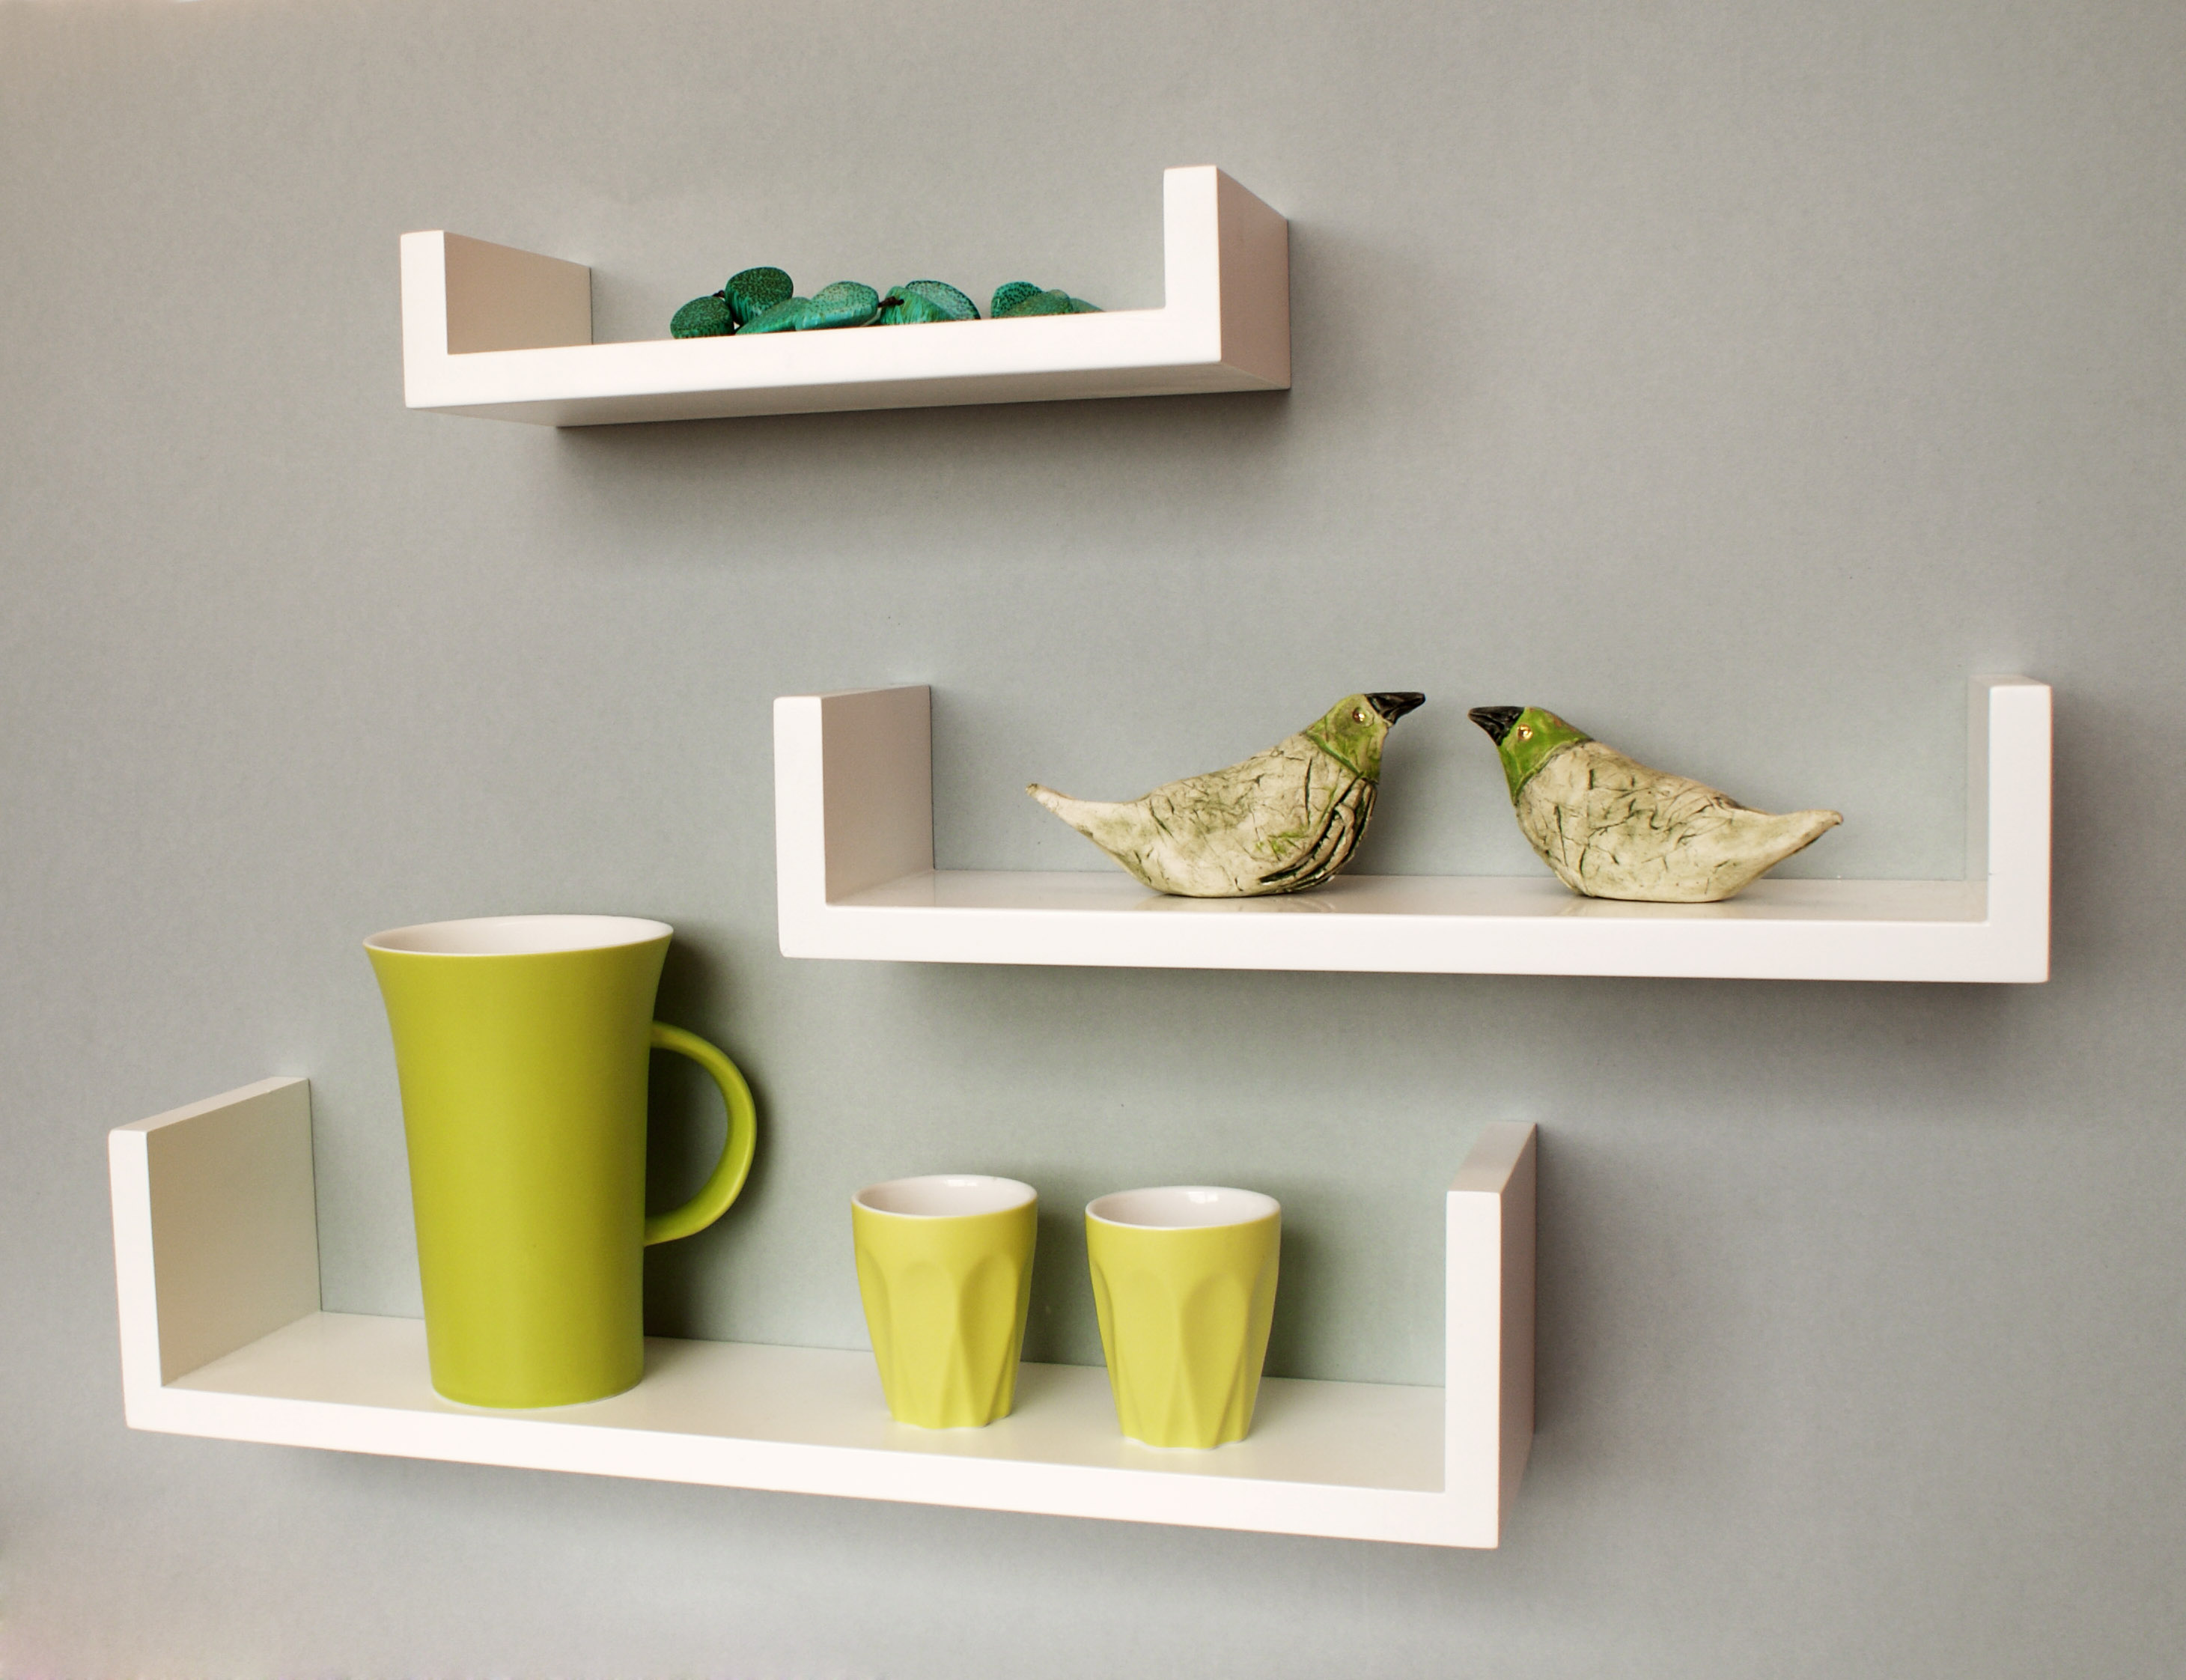 U x 3 Tres Shelf in situ